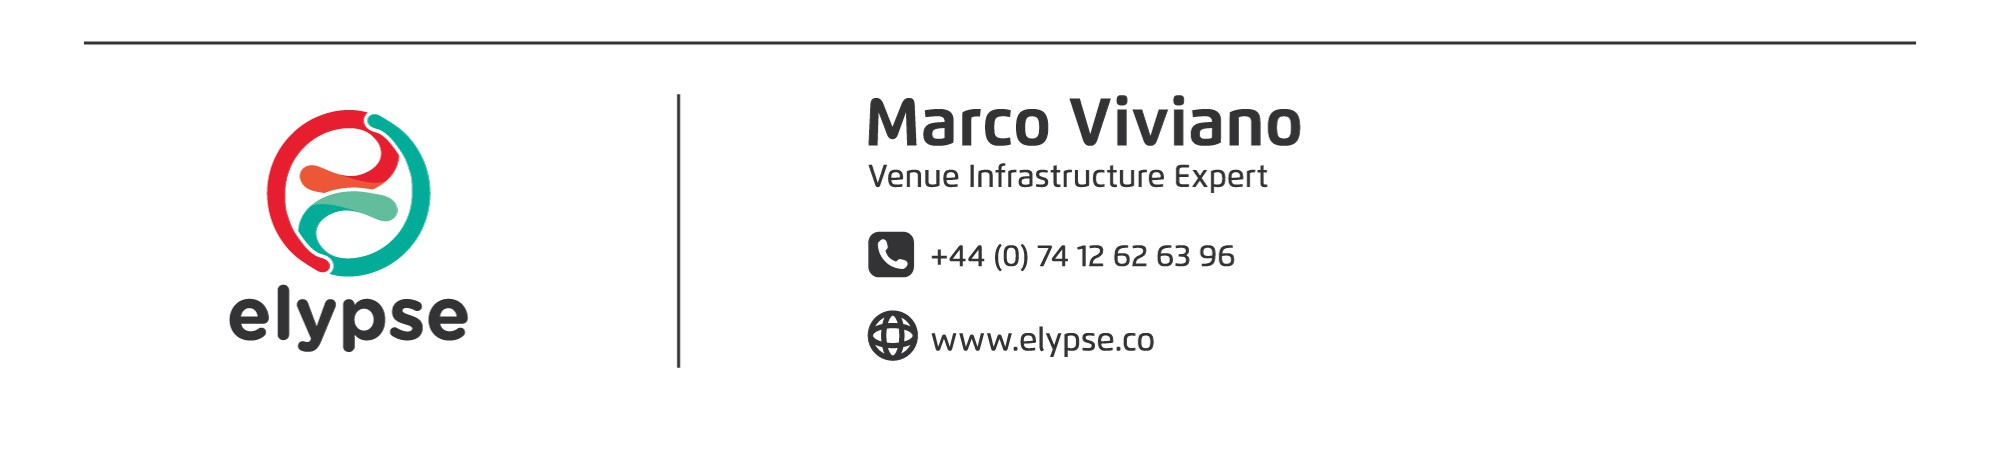 Marco's business card + email adress signature